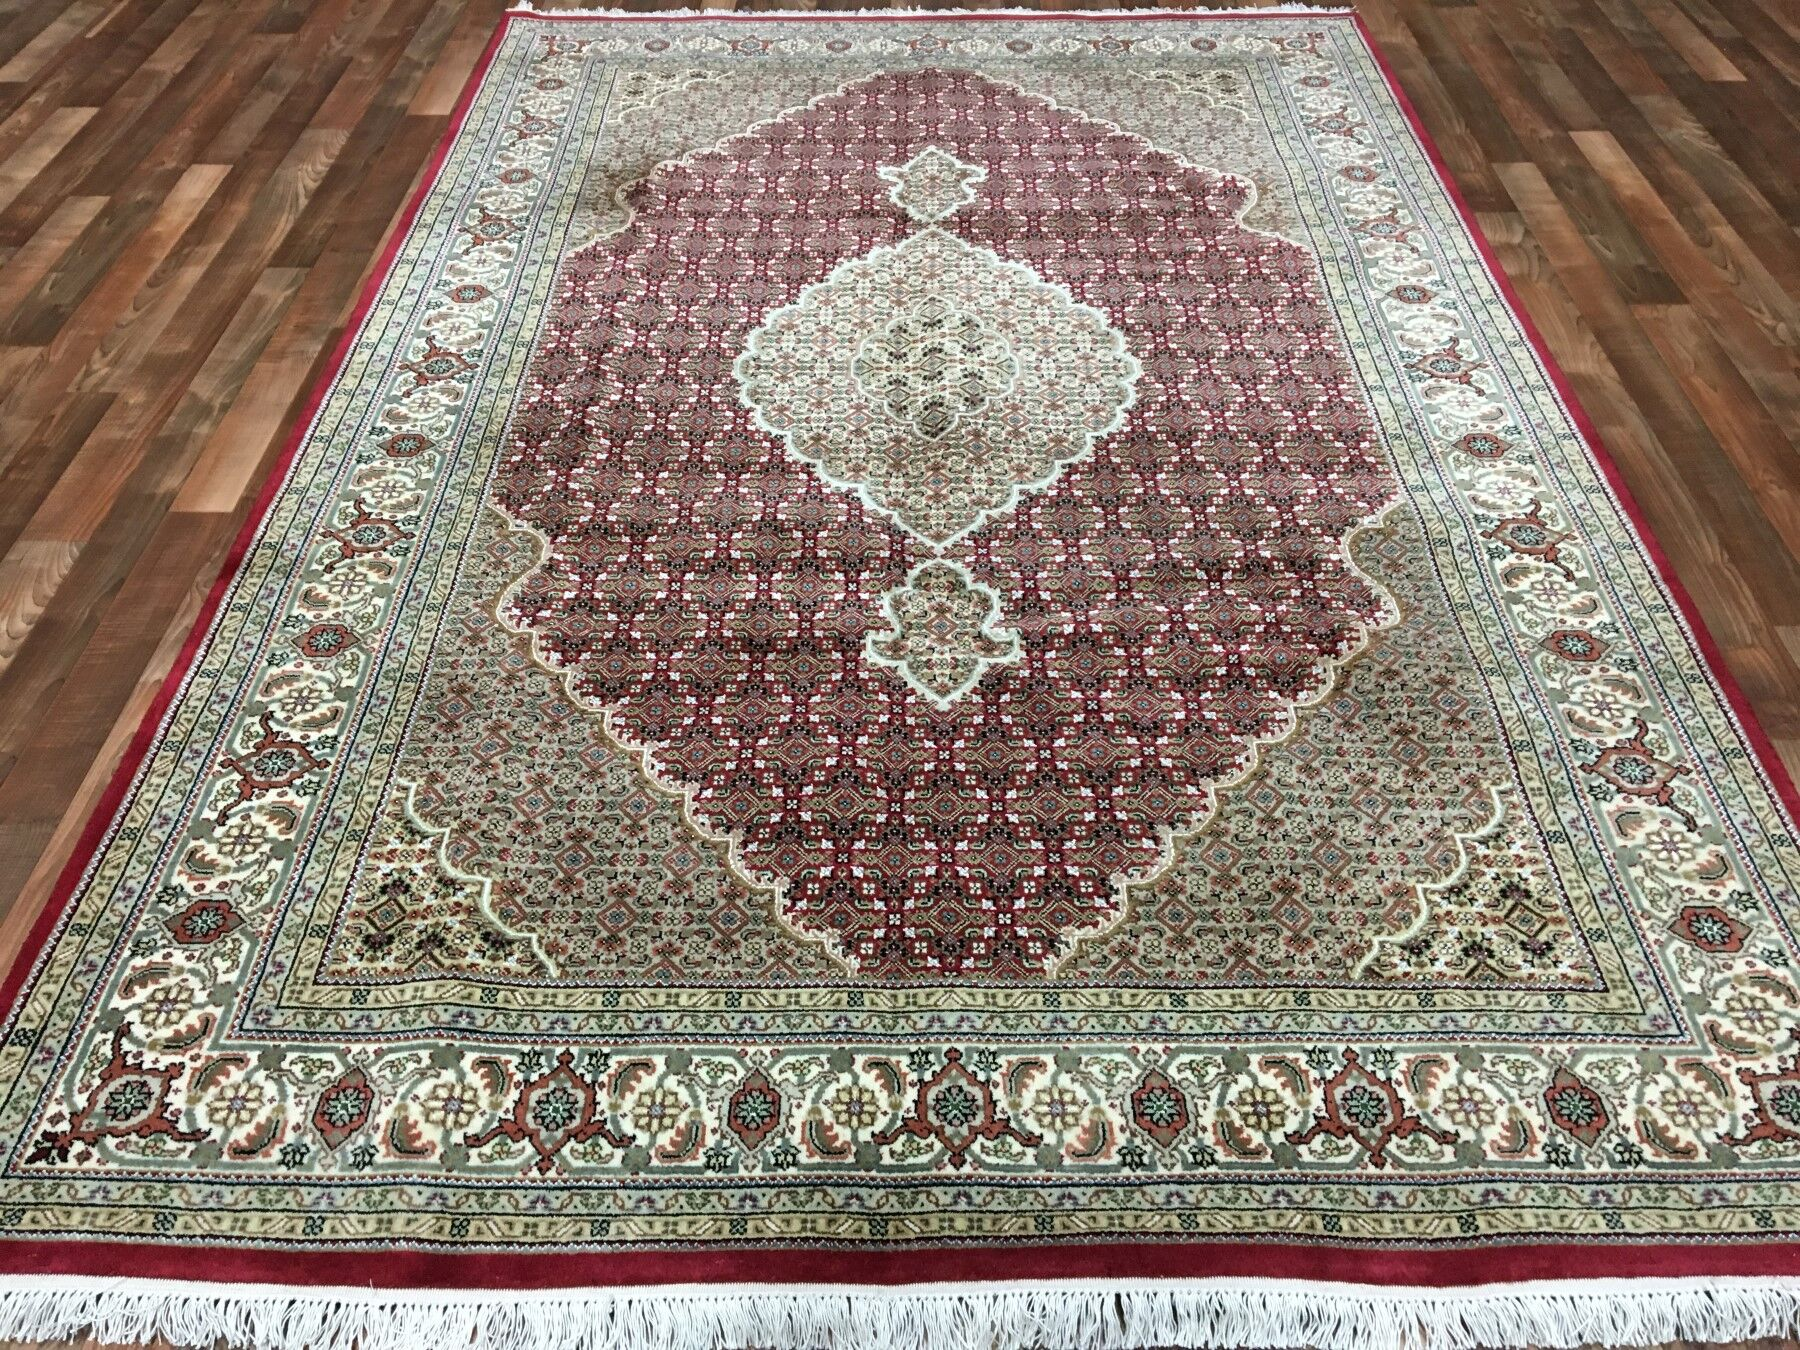 One-of-a-Kind Avonmore Hand-Woven Wool and Silk Olive/Burgundy Area Rug